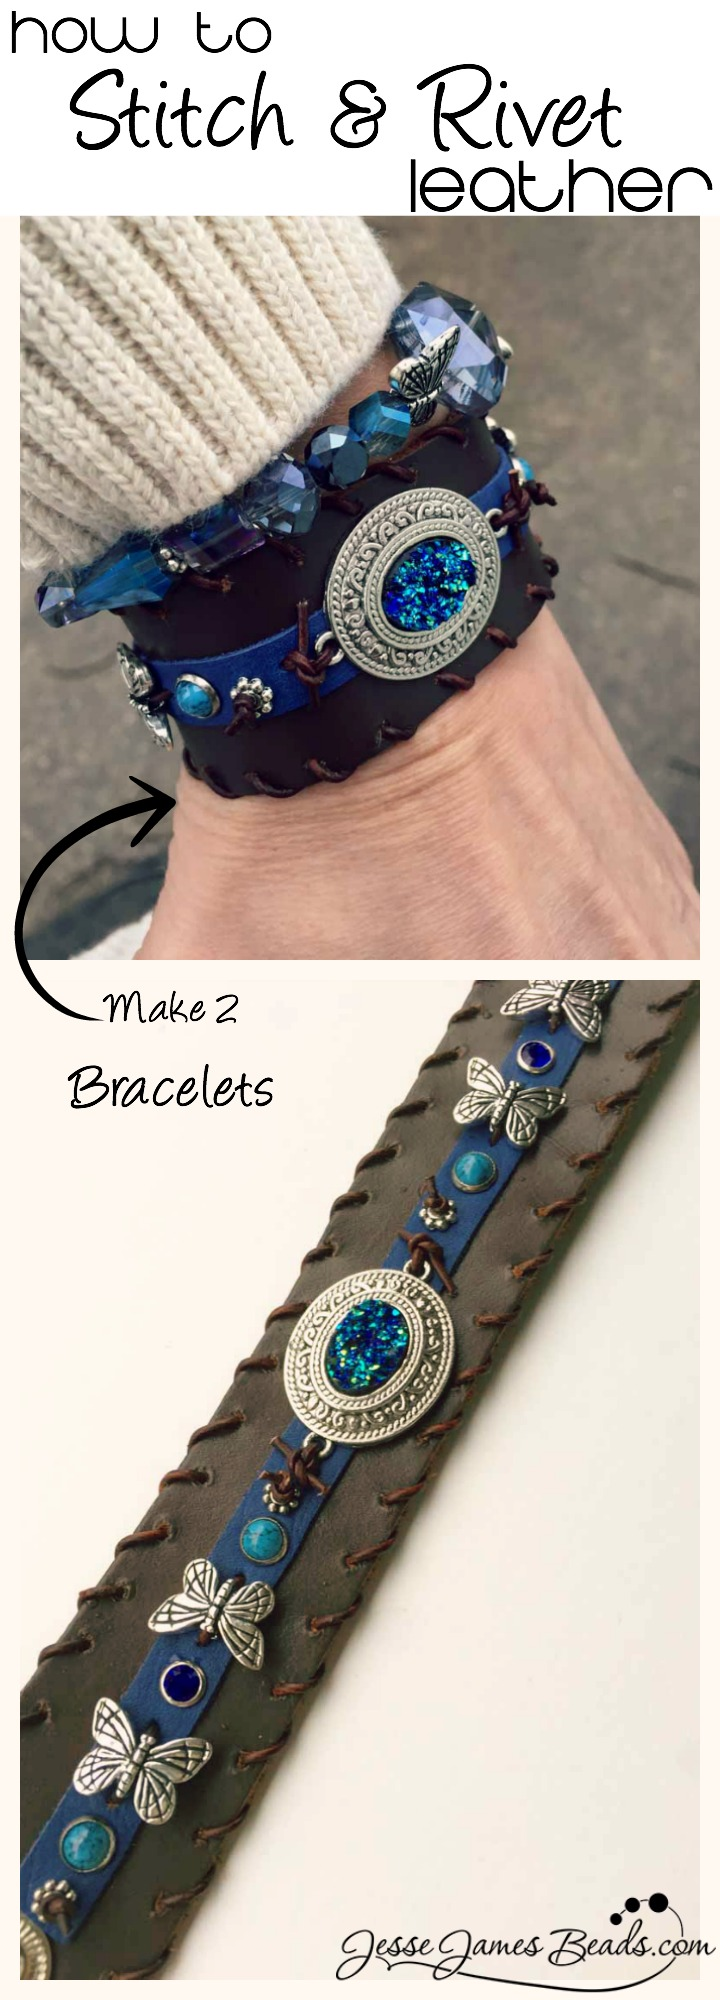 How to make leather jewelry - how to stich leather - how to rivet leather - New Bead Fest class by Jesse James Beads and Candie Cooper